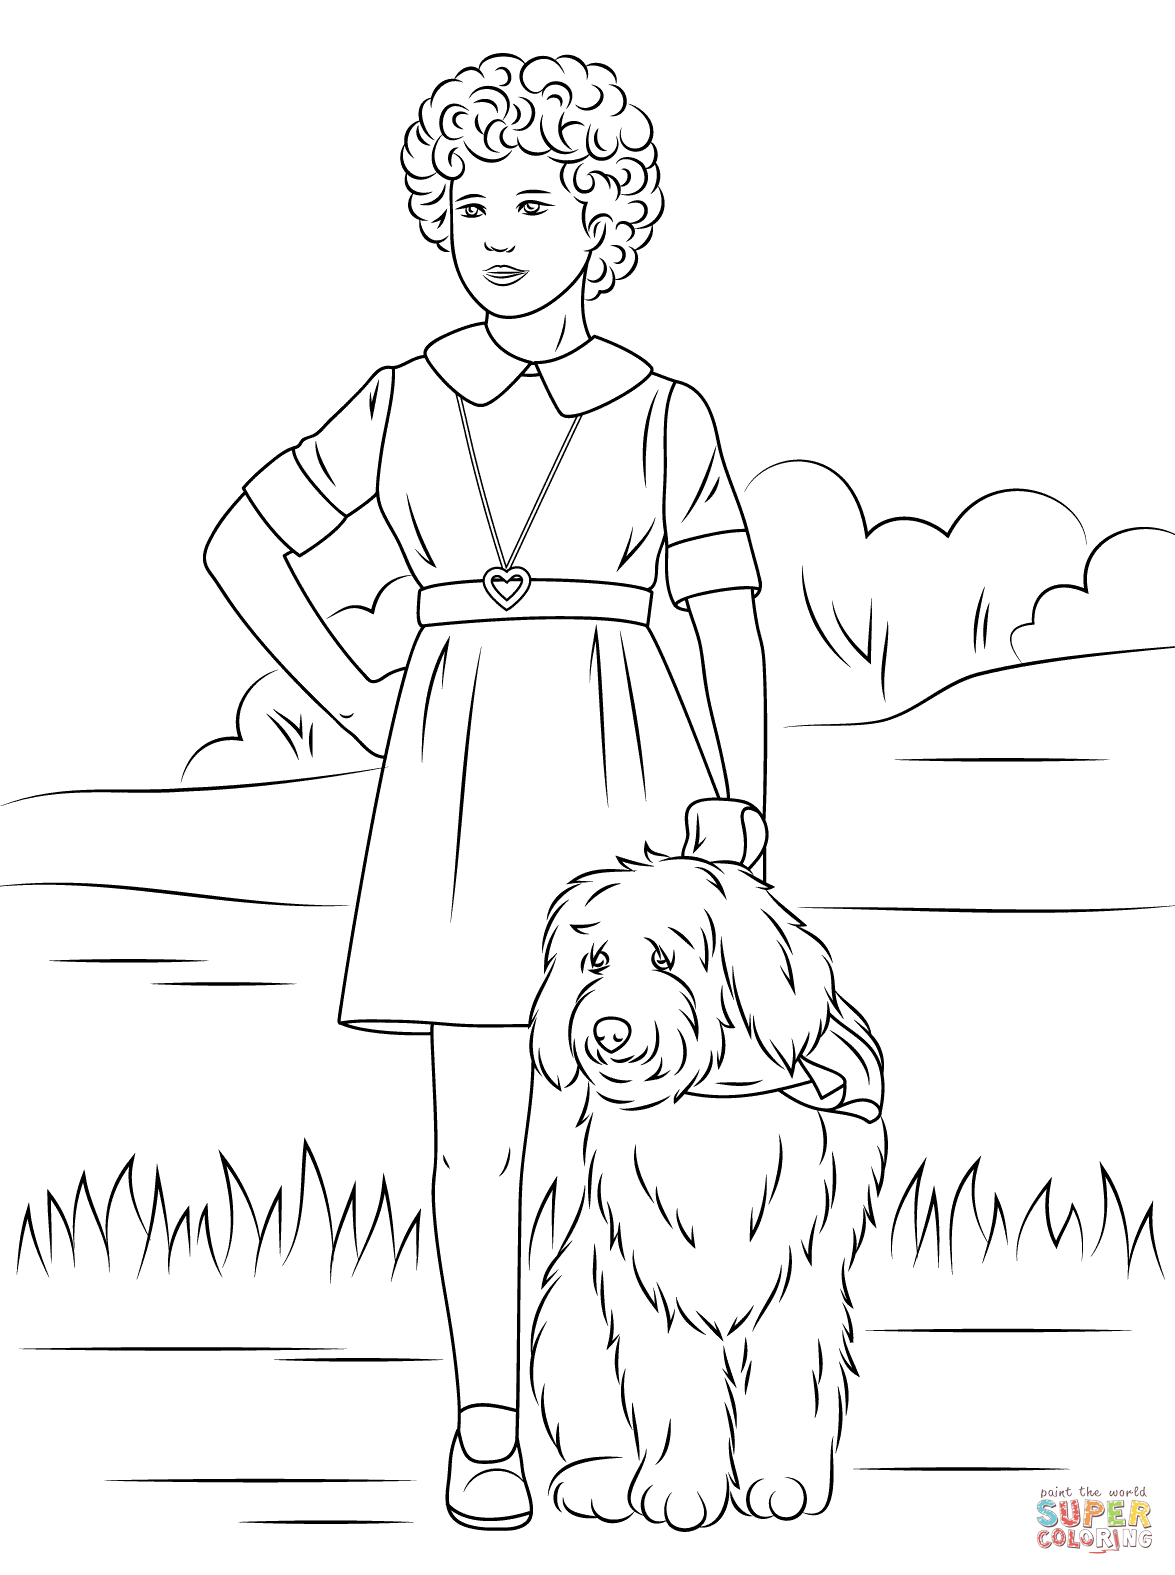 little orphan annie coloring pages little orphan annie coloring page free printable little pages orphan annie coloring